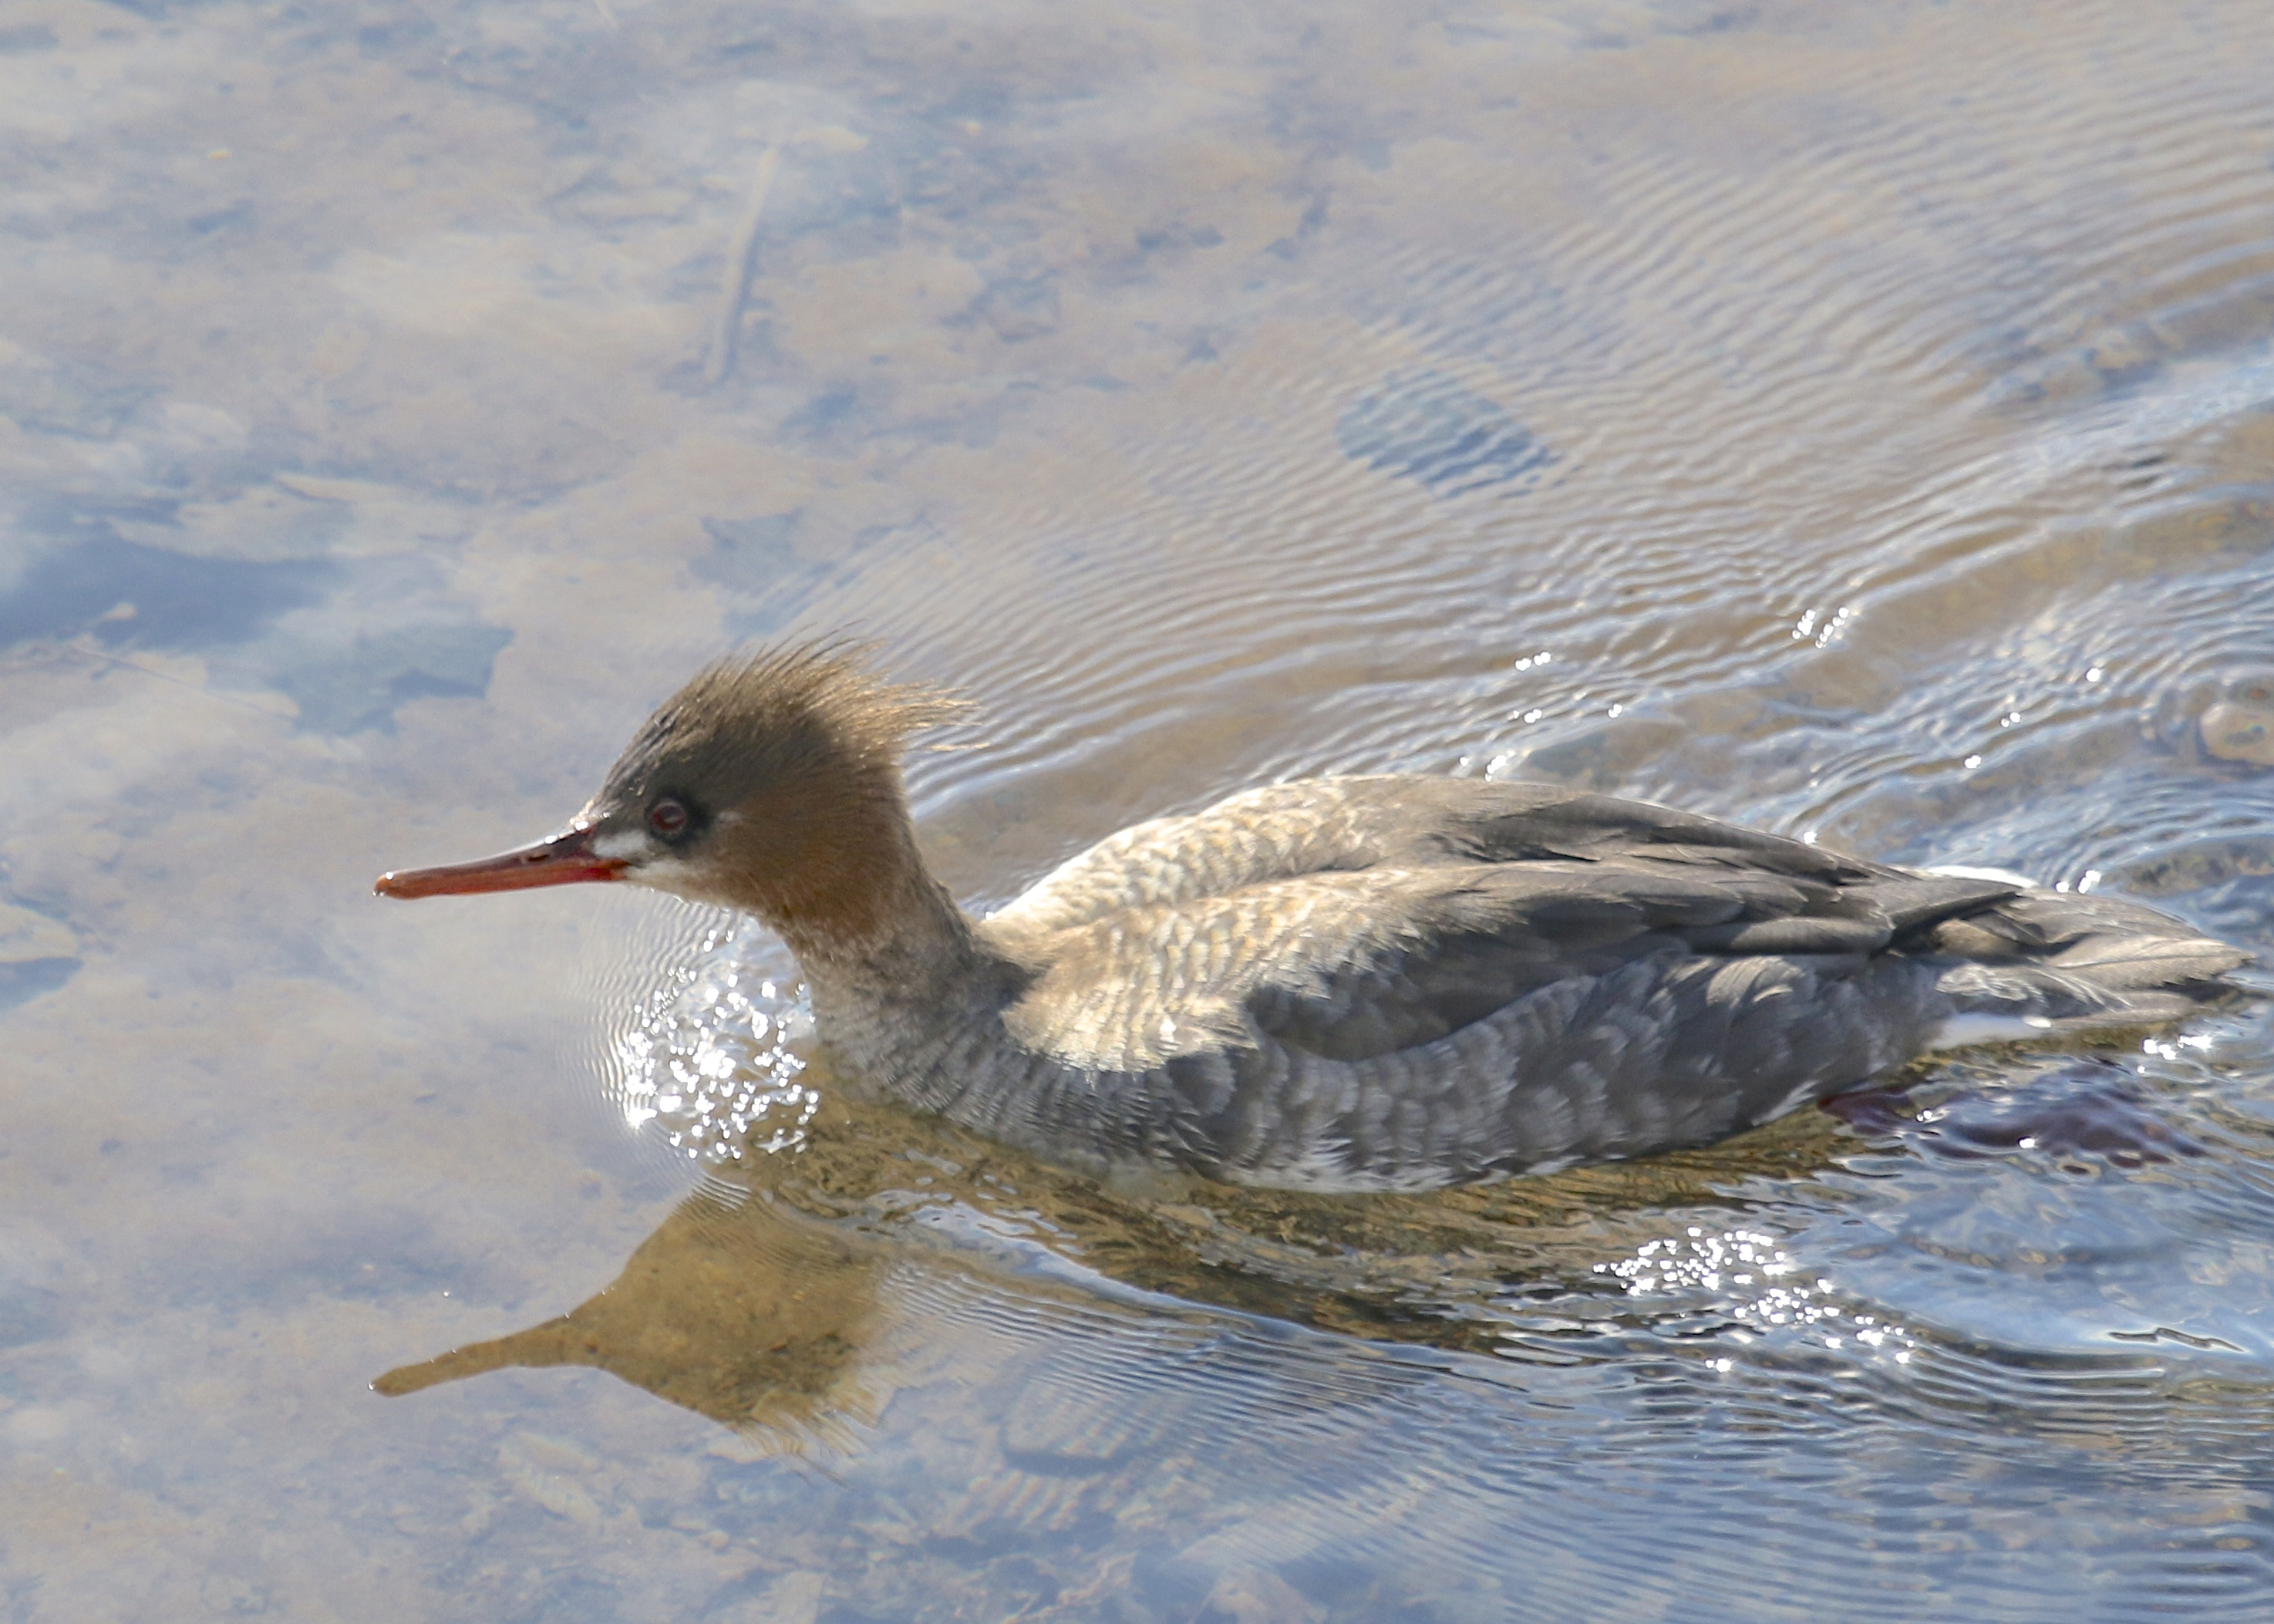 Common Merganser at Rondout Reservoir, 3/1/14.